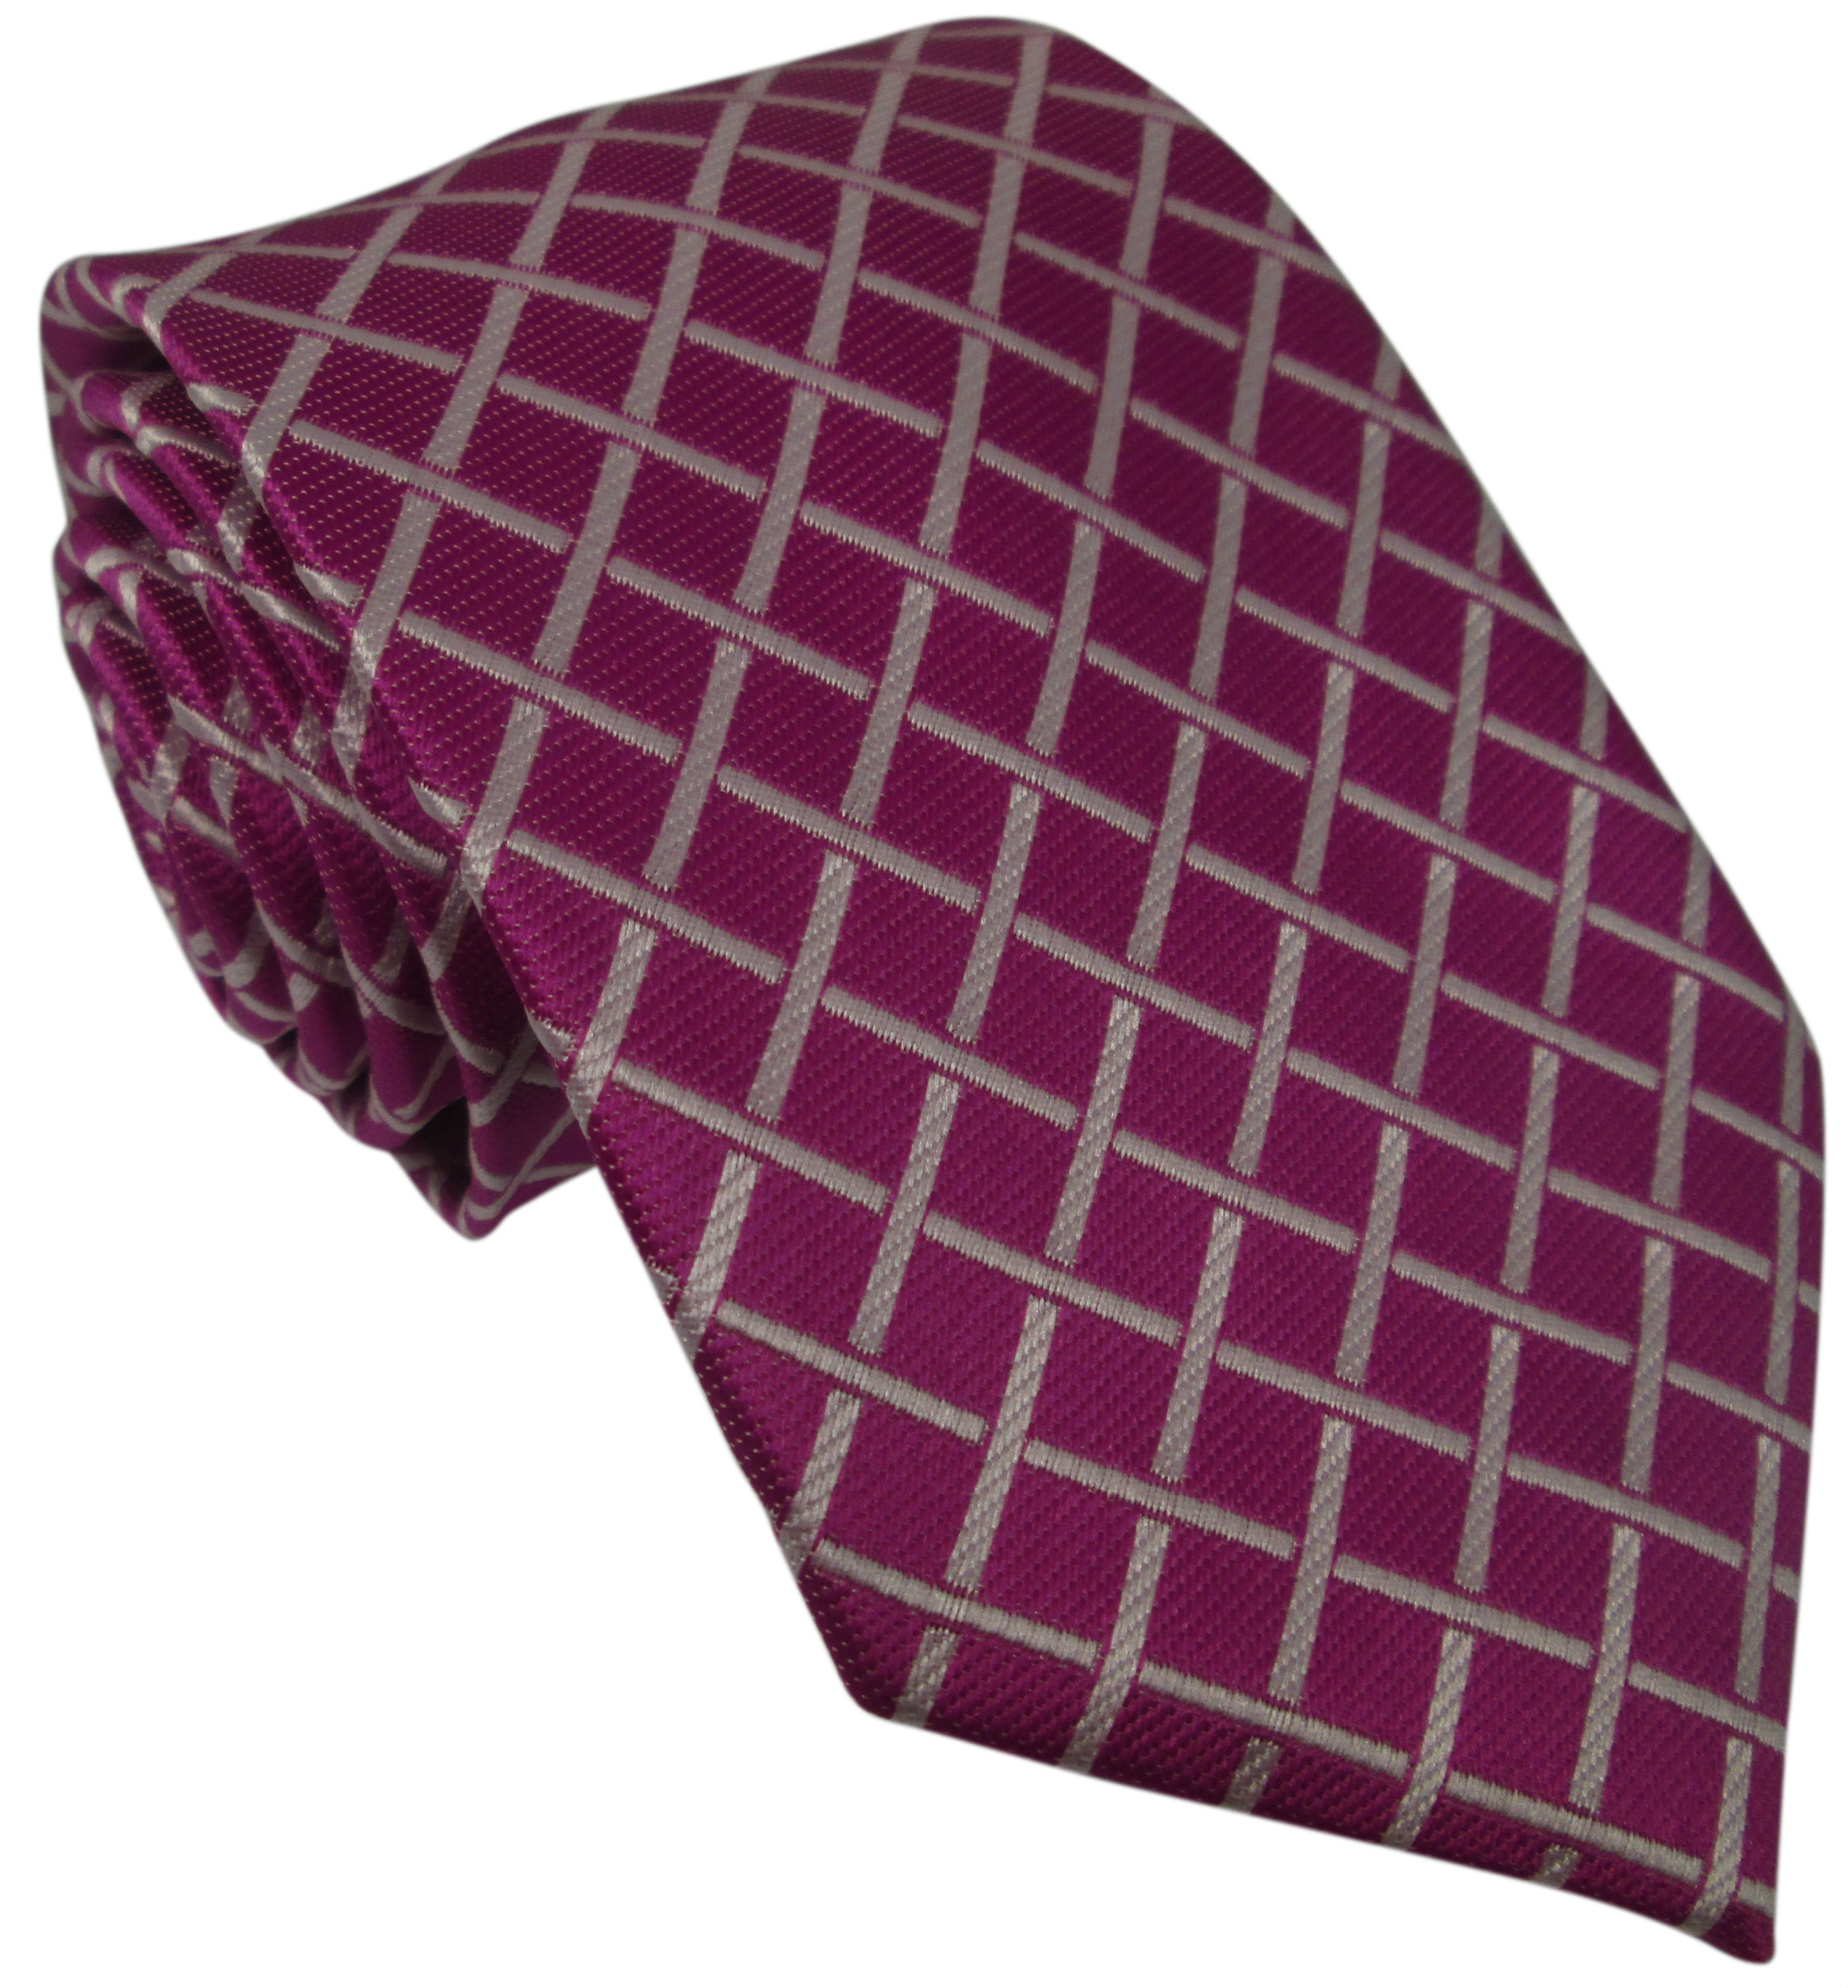 Purple Silk Tie with White Grid Pattern